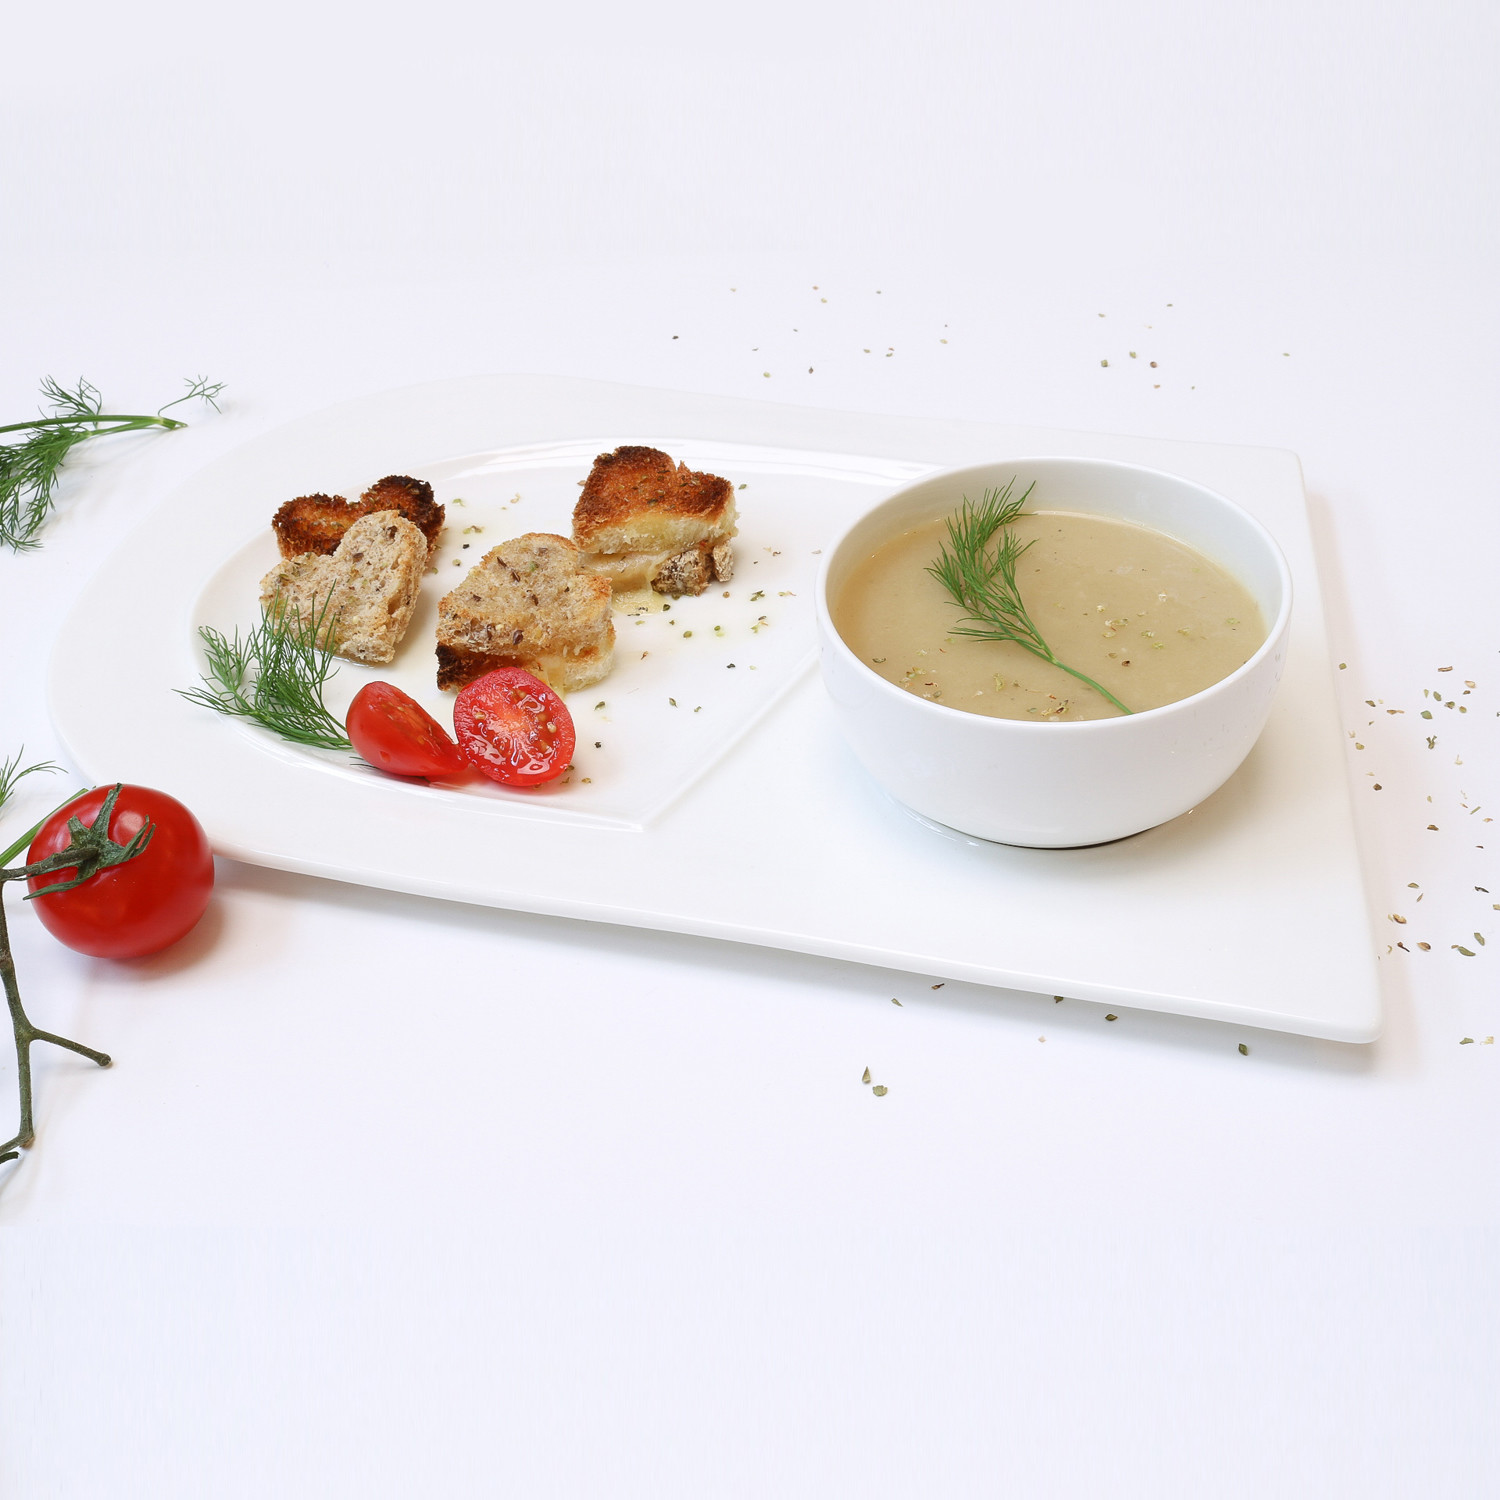 ... Soup And Sandwich Plate Mug. Fancy Plates For Half The Three Dog Kitchen & Soup And Sandwich Plate Sets - Best Plate 2018